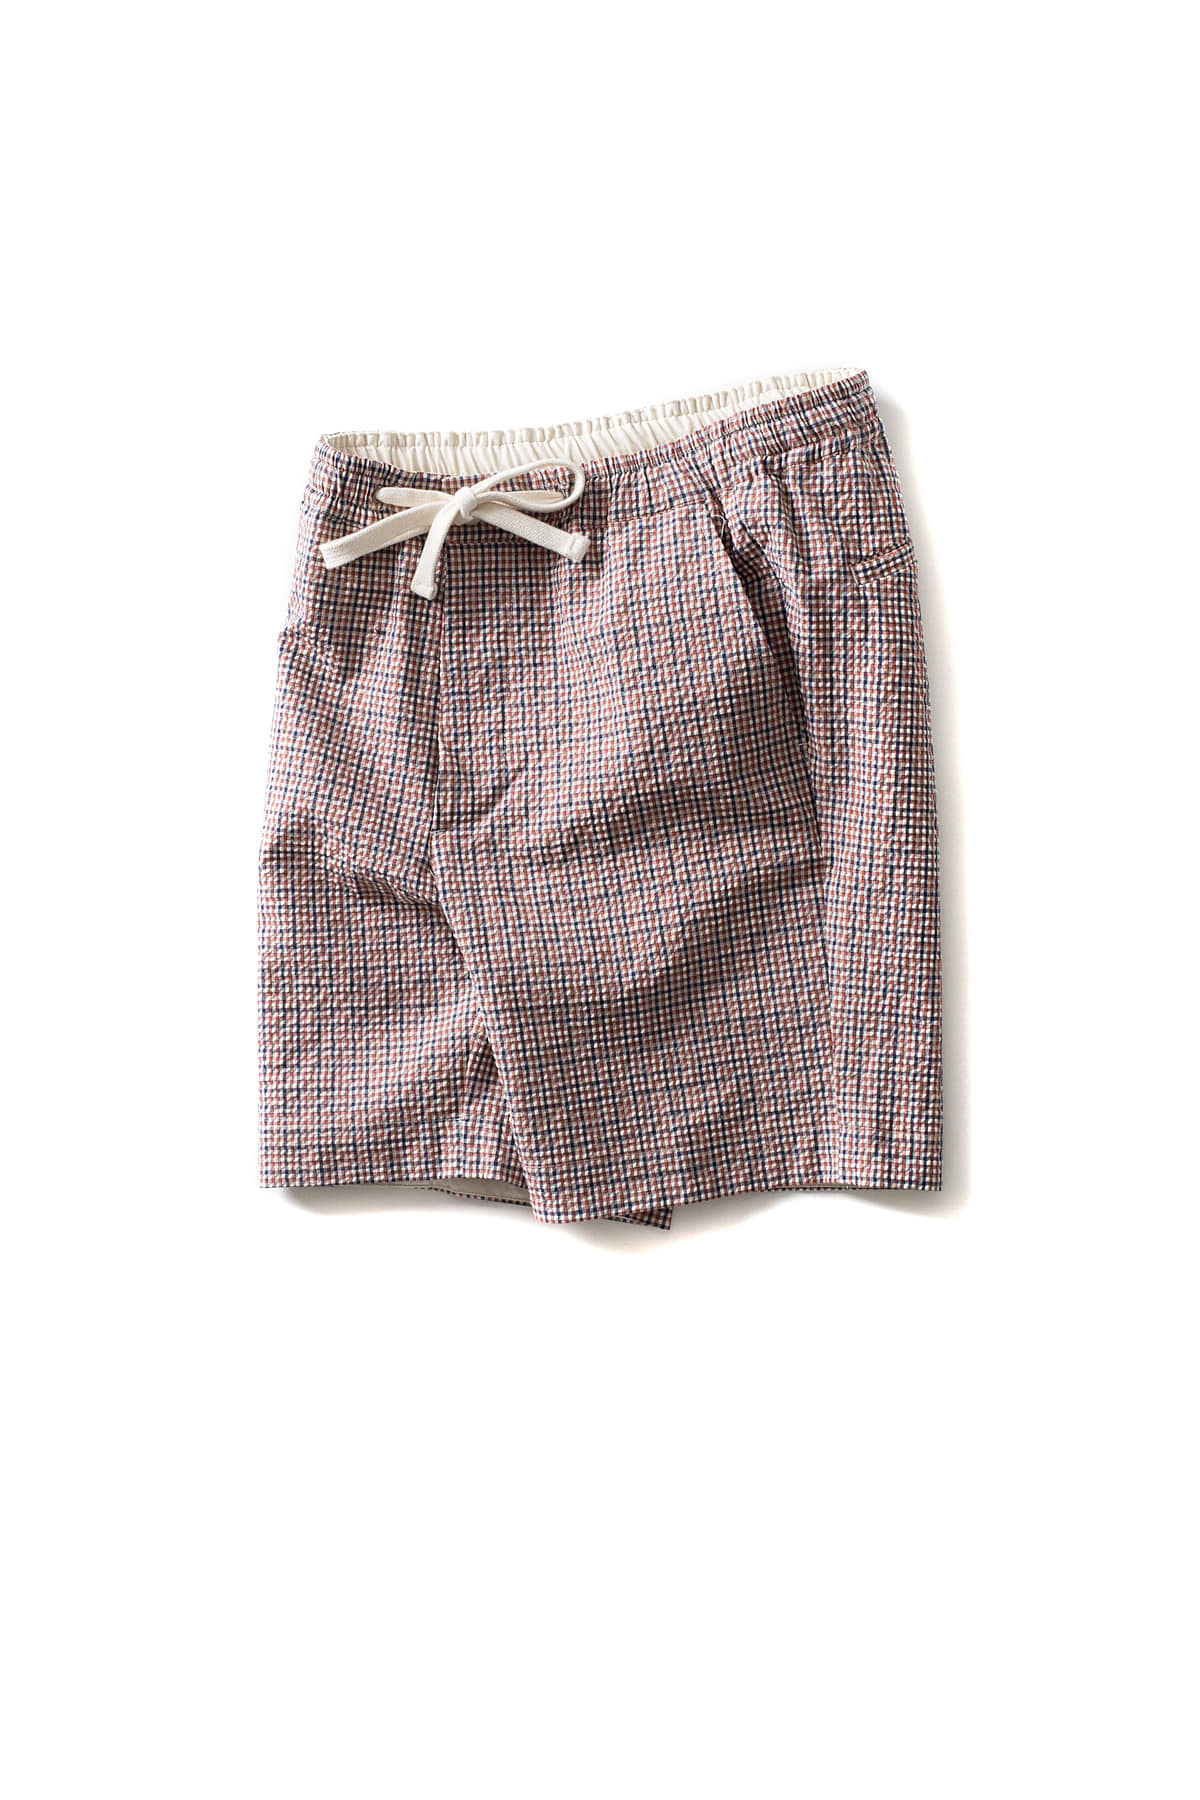 East Harbour Surplus : Billy Short Pants (Window Pane)